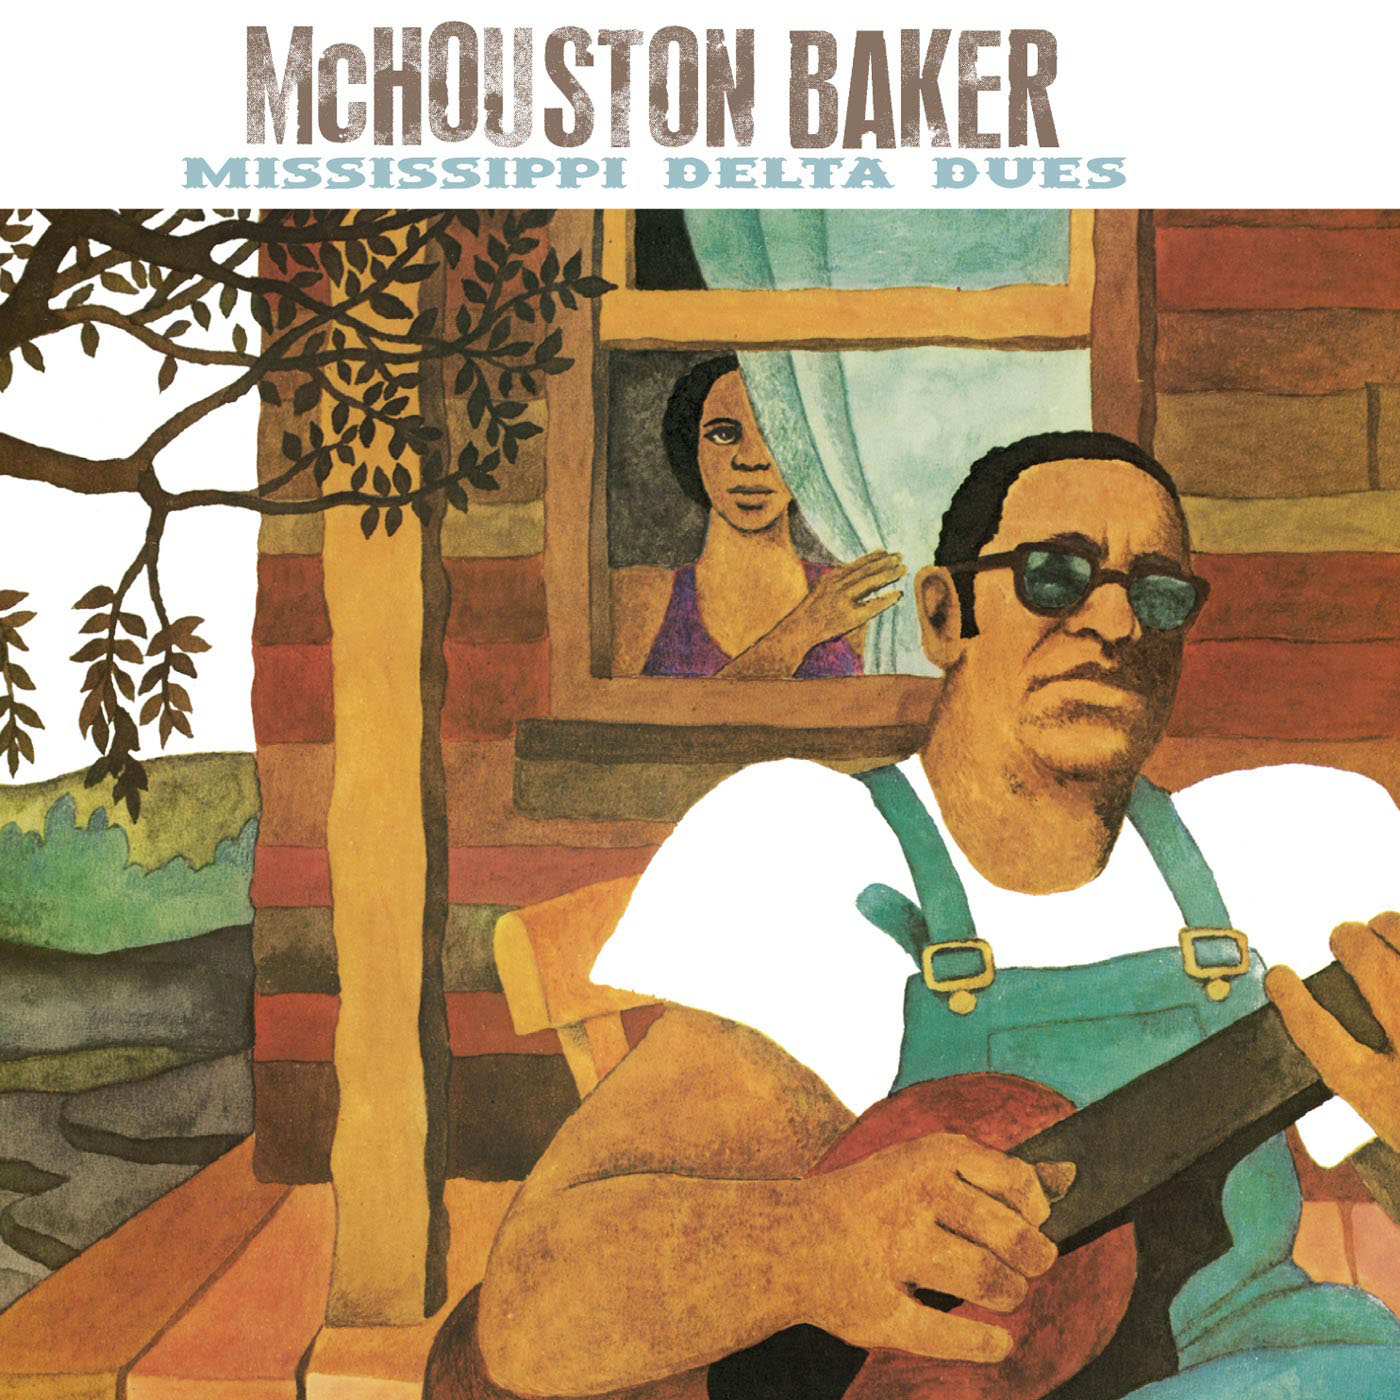 Mississippi Delta Blues by McHouston Baker